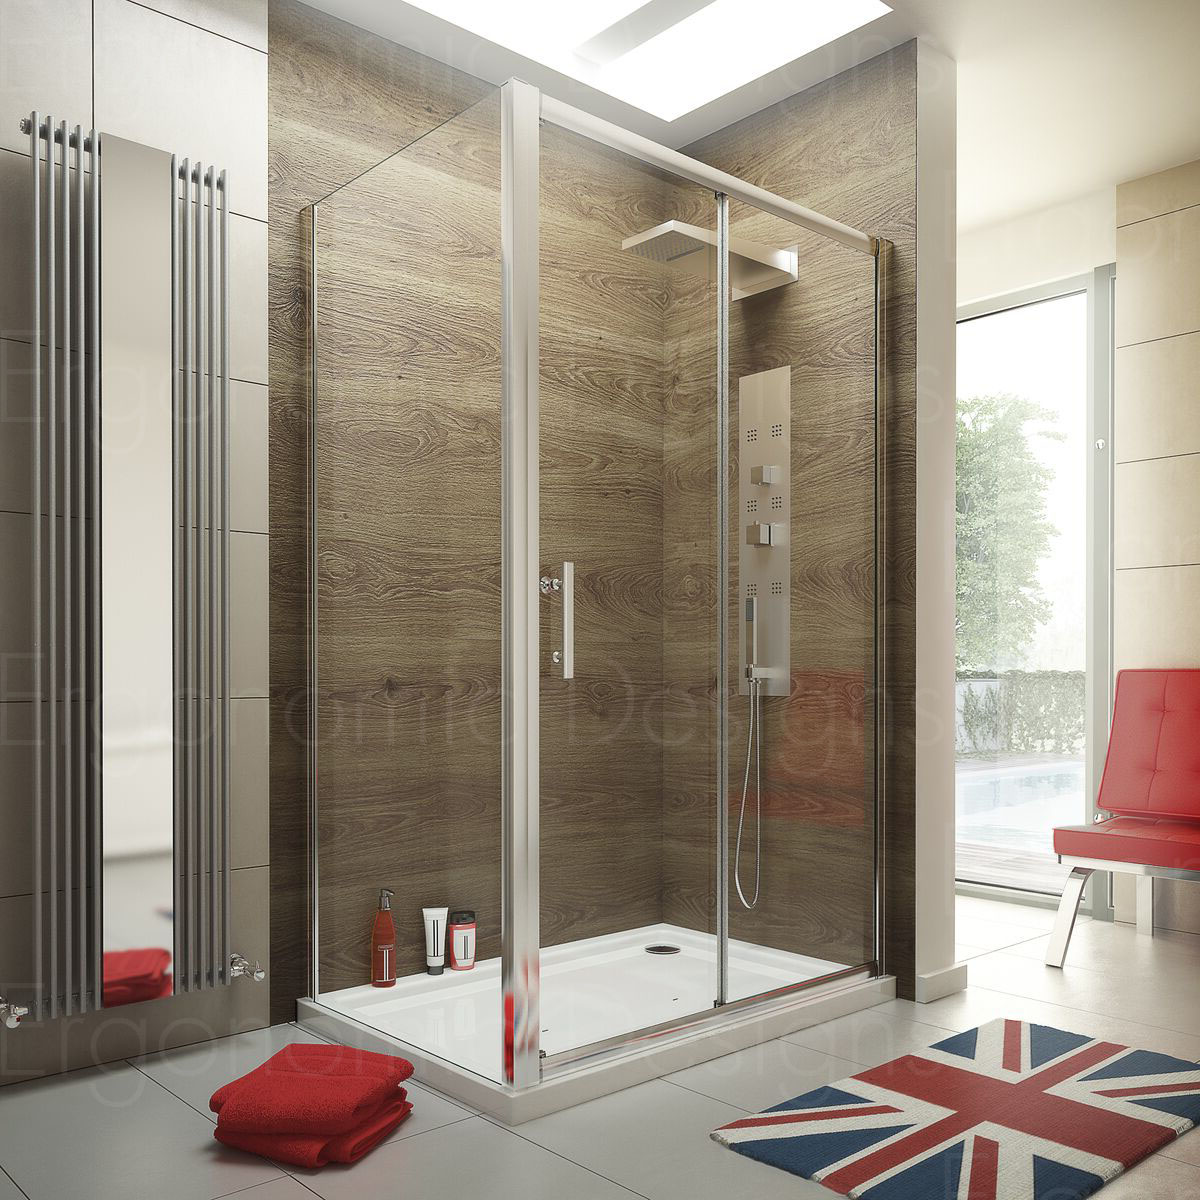 1100 x 760 Sliding Door Shower Enclosure Glass Cubicle with Stone ...